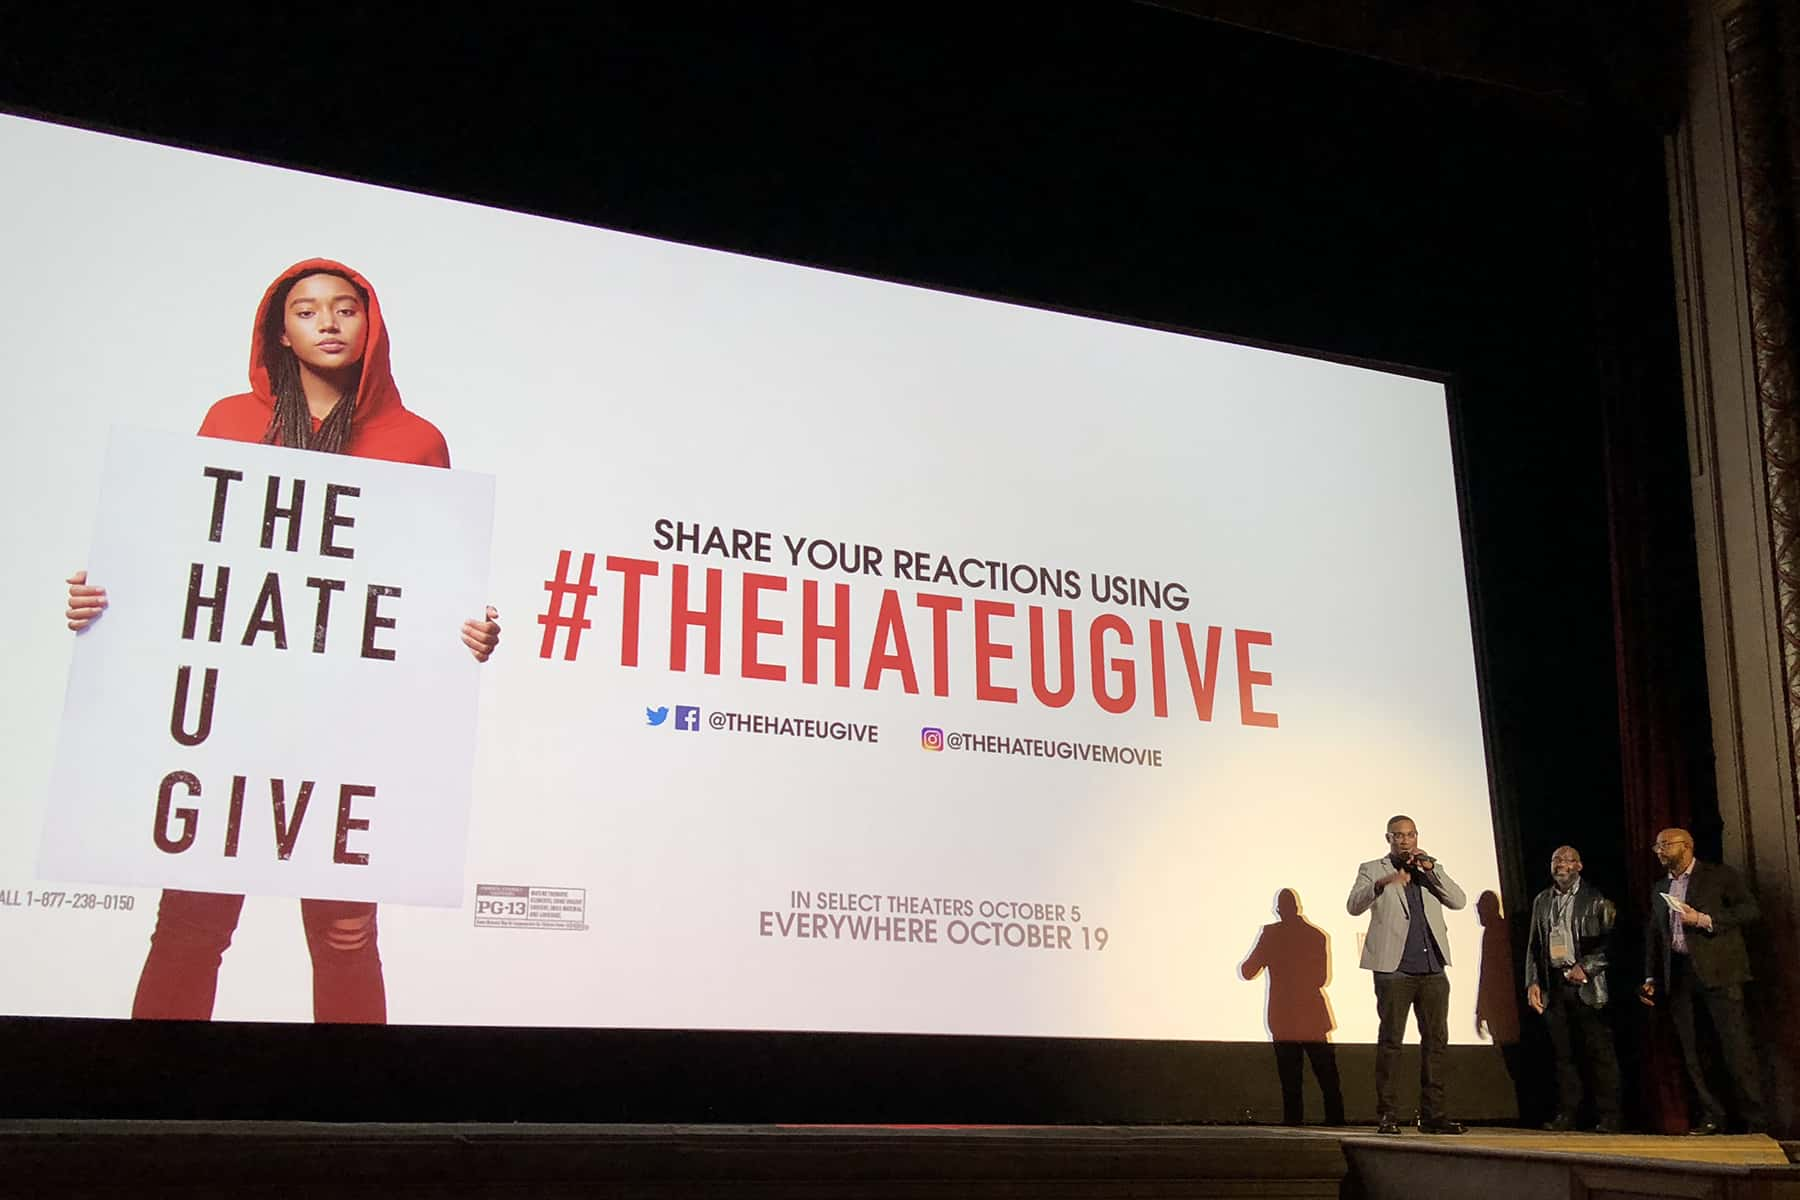 02_101018_thehateugive_010